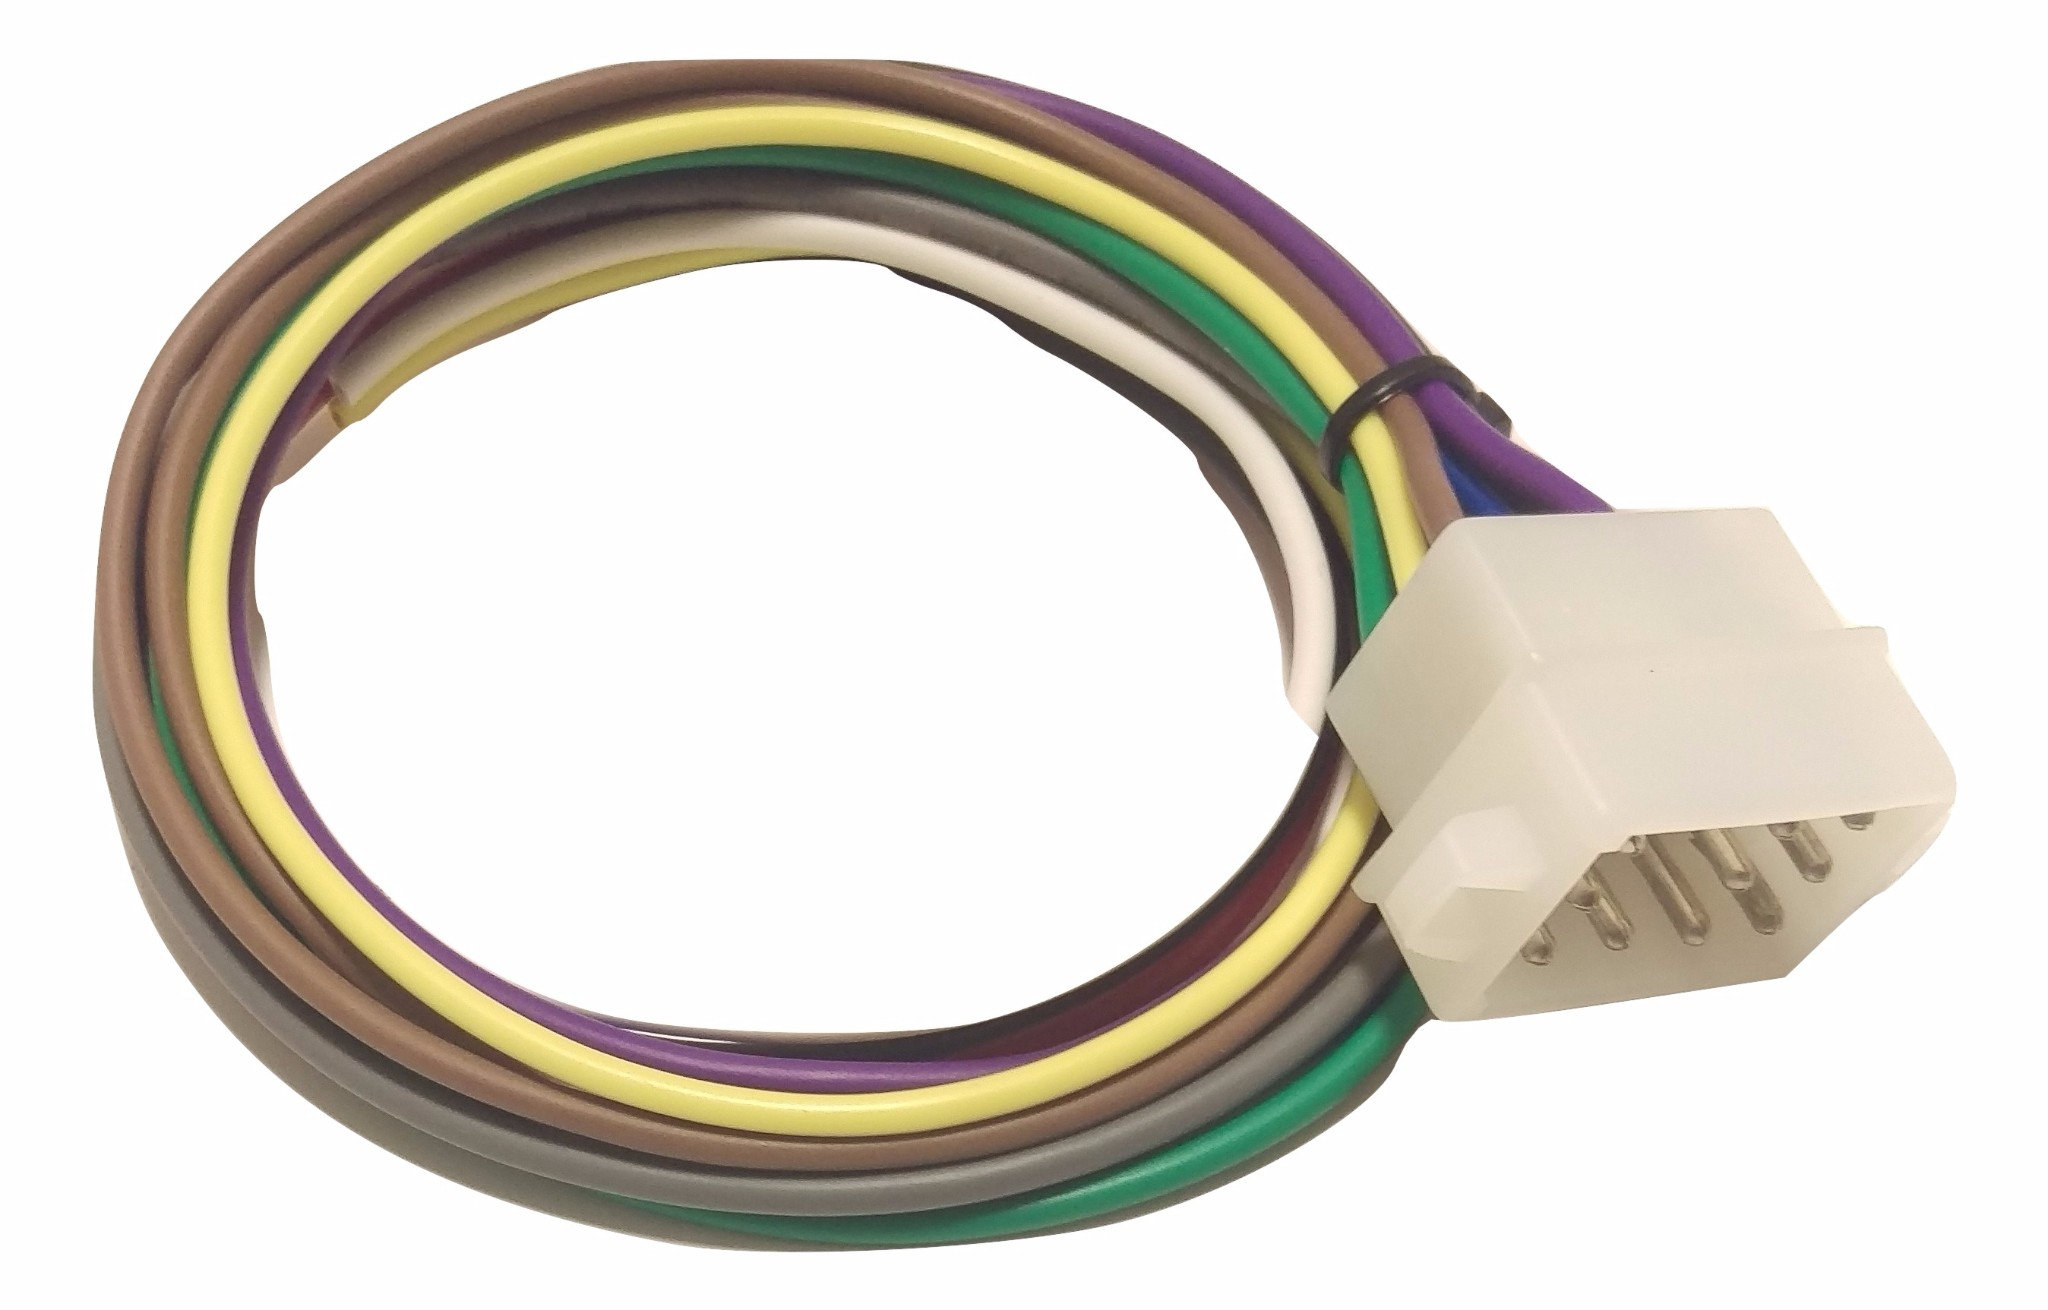 Galls Power Harness Plug Cable 12 Pin ST110 on